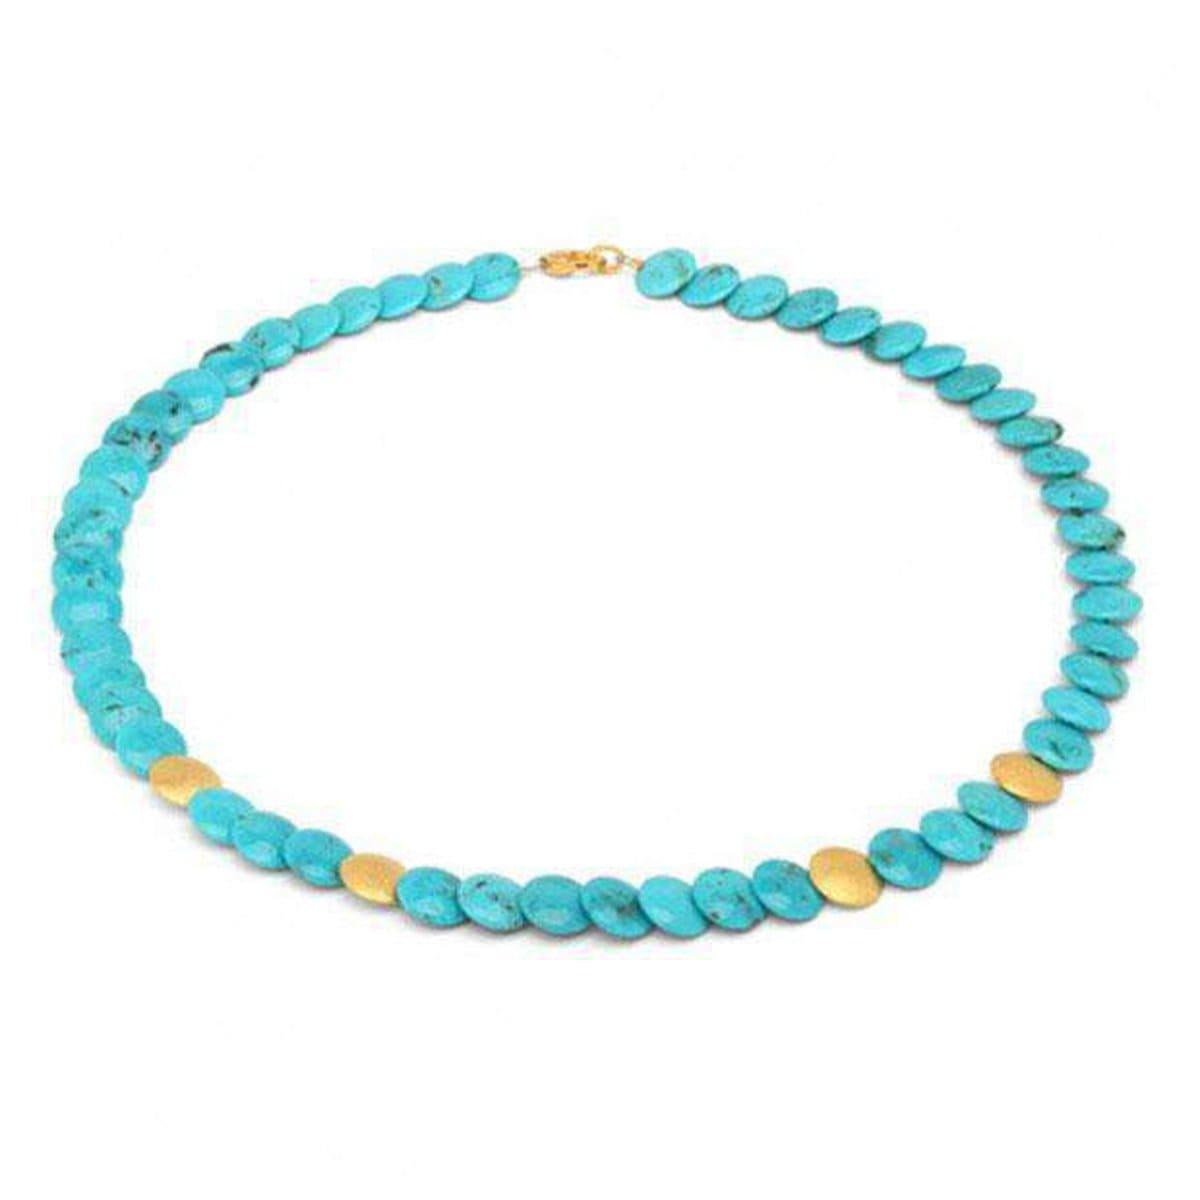 Discana Turquoise Necklace - 84861256-Bernd Wolf-Renee Taylor Gallery